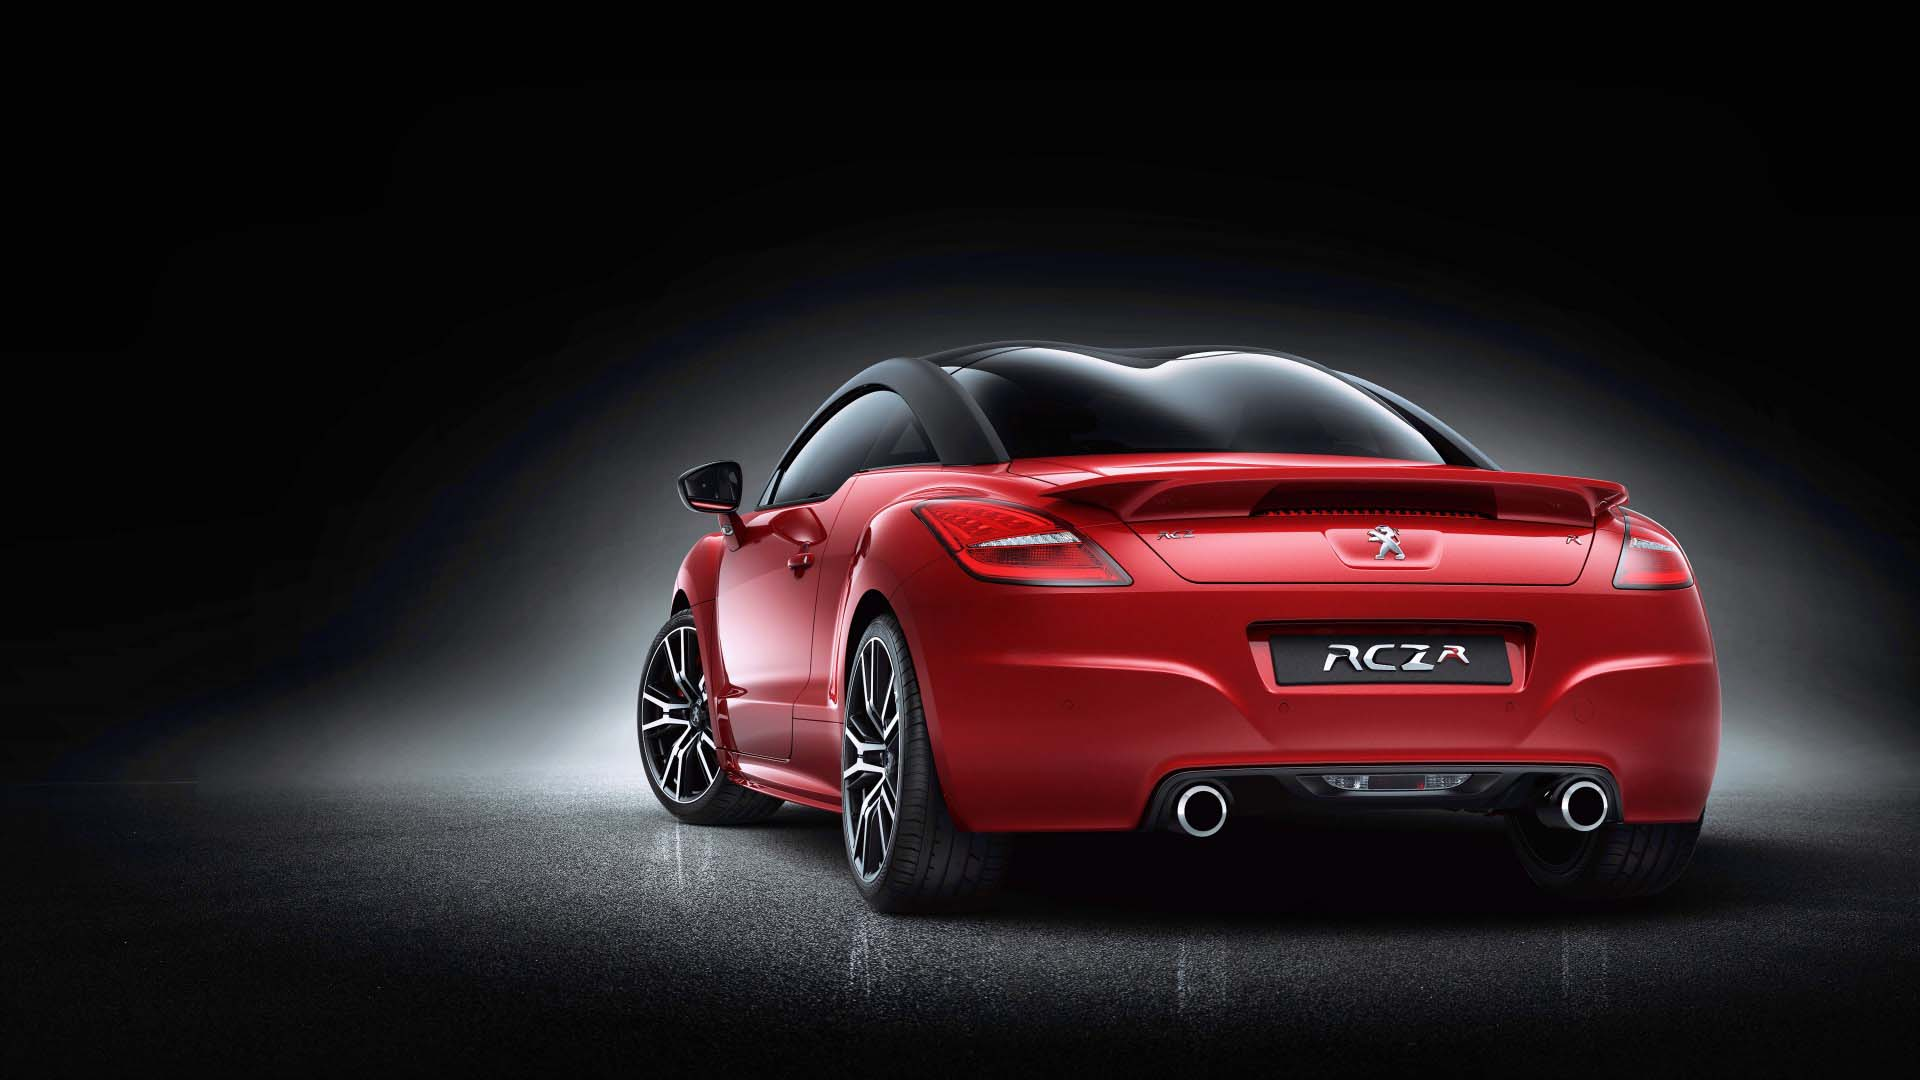 Gallery: More Images Of Peugeot RCZ R